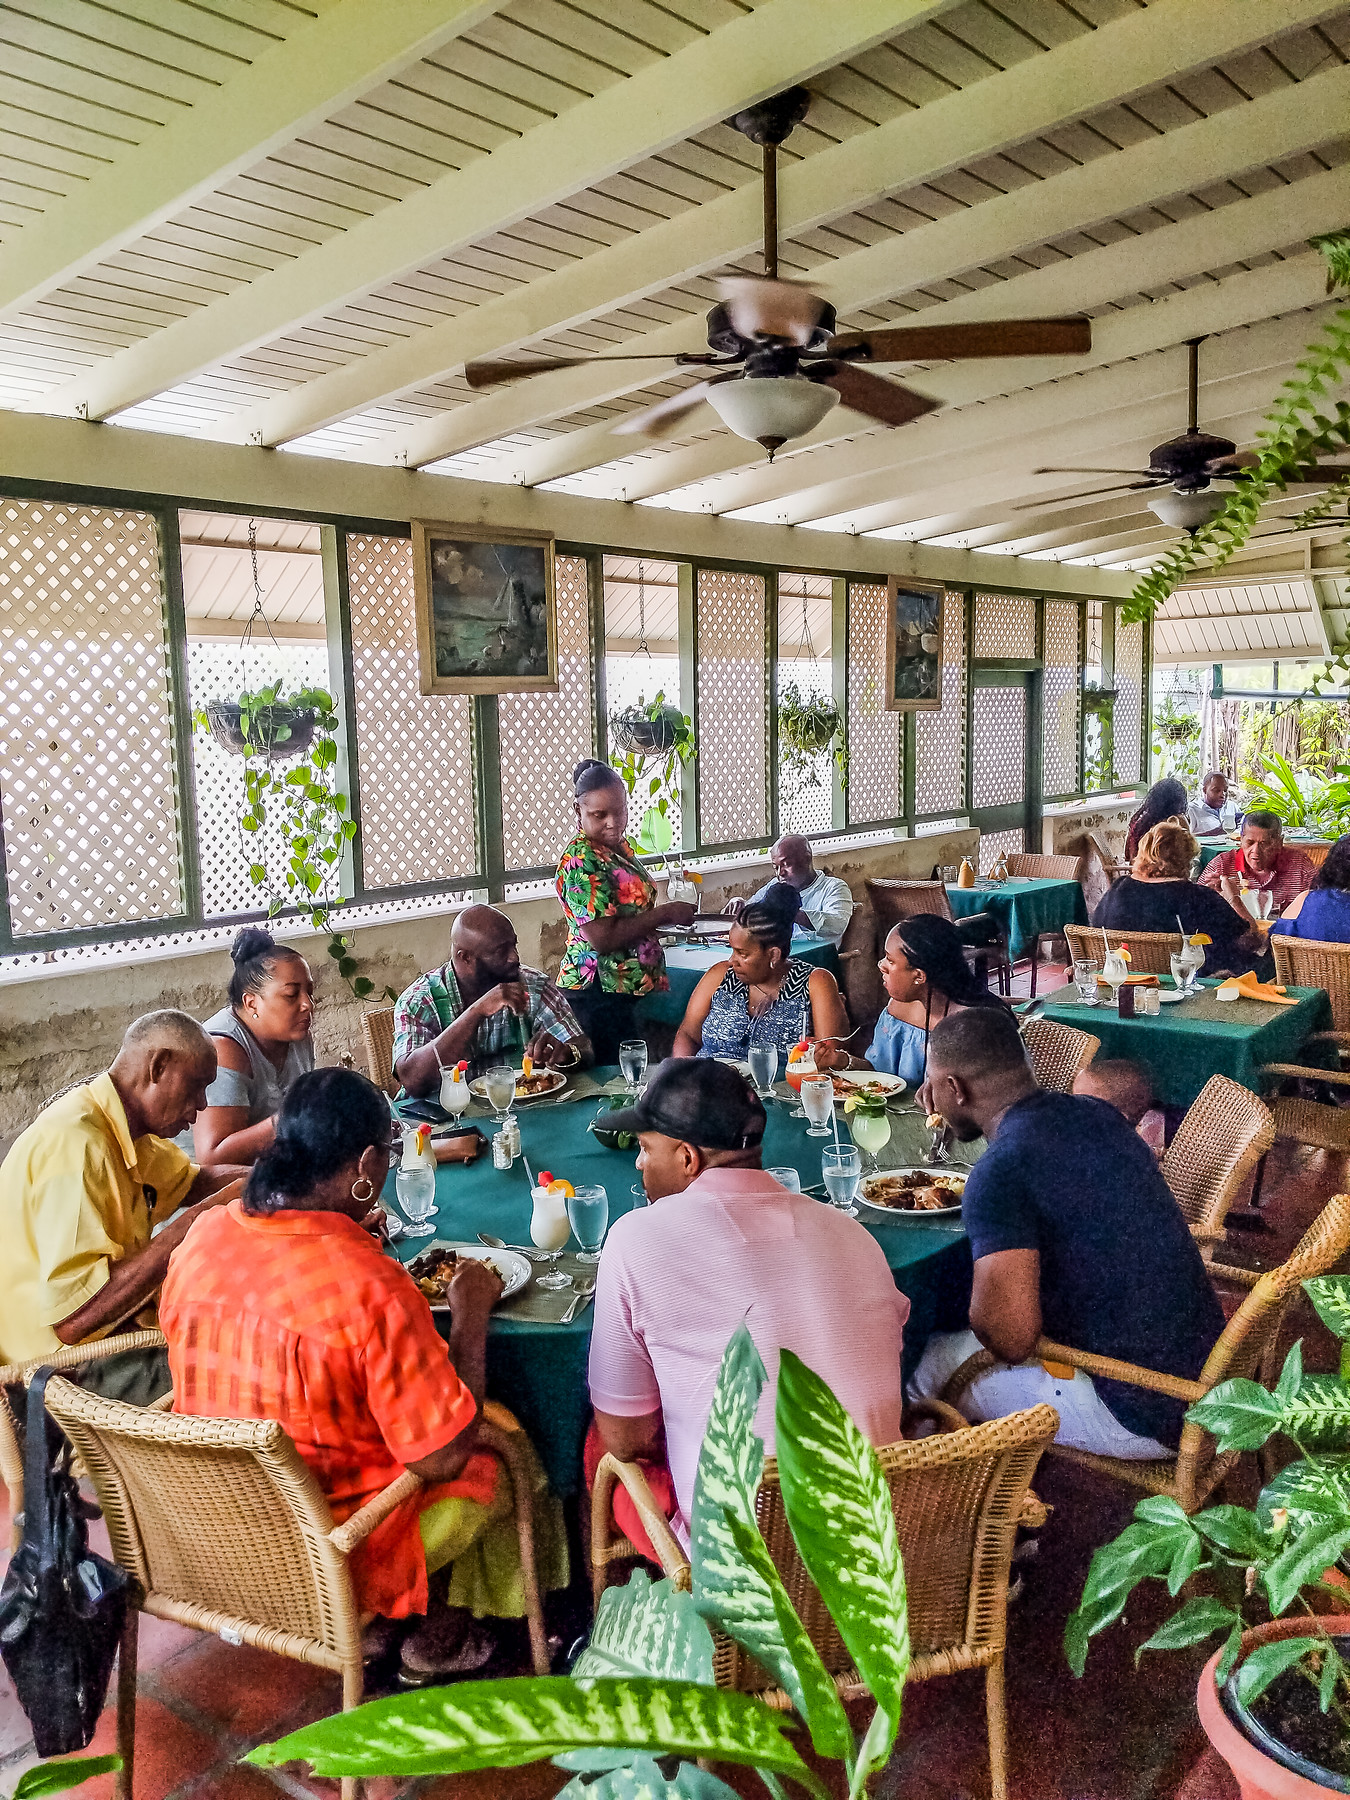 The best Barbados restaurants include Brown Sugar, which is well loved by locals for its buffet.